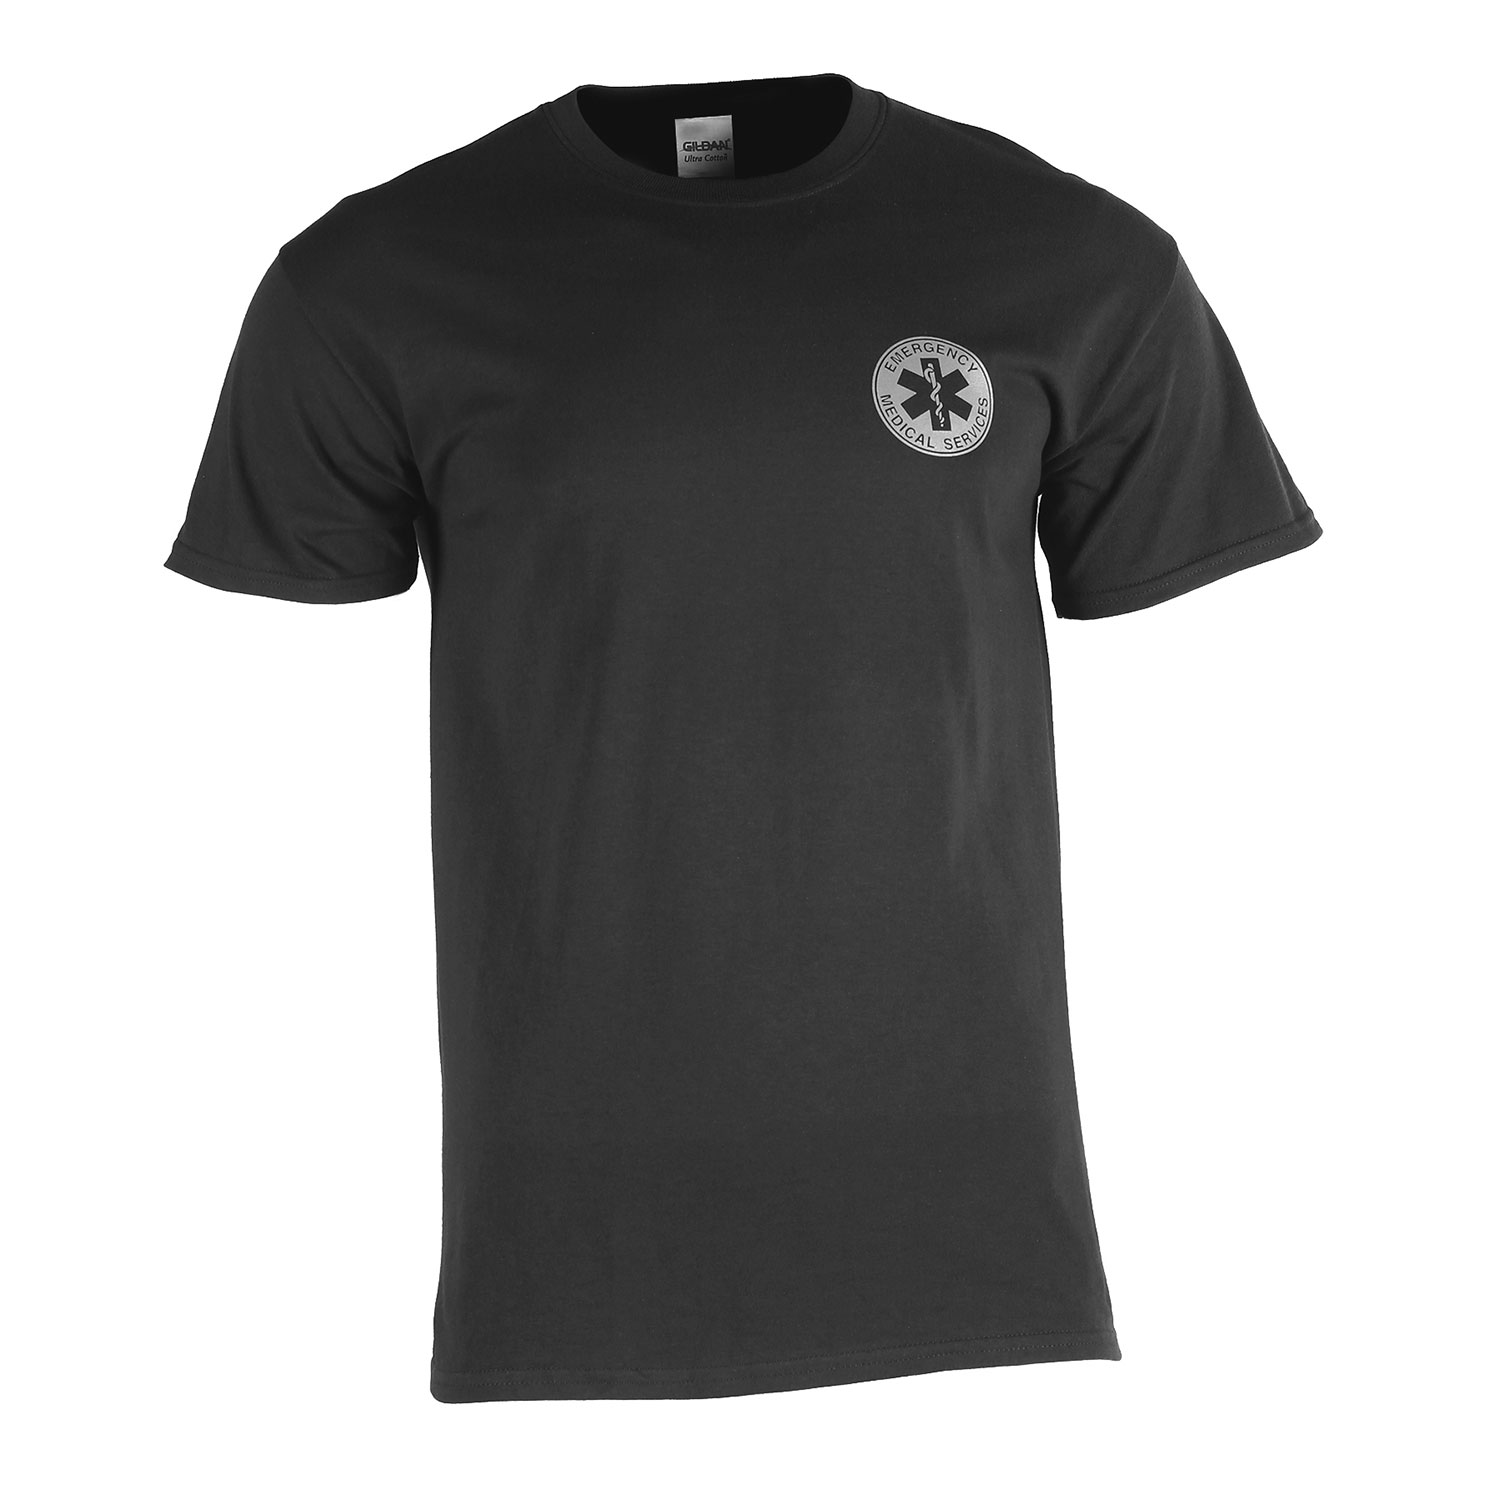 Galls 360 Reflective Short Sleeve T Shirt